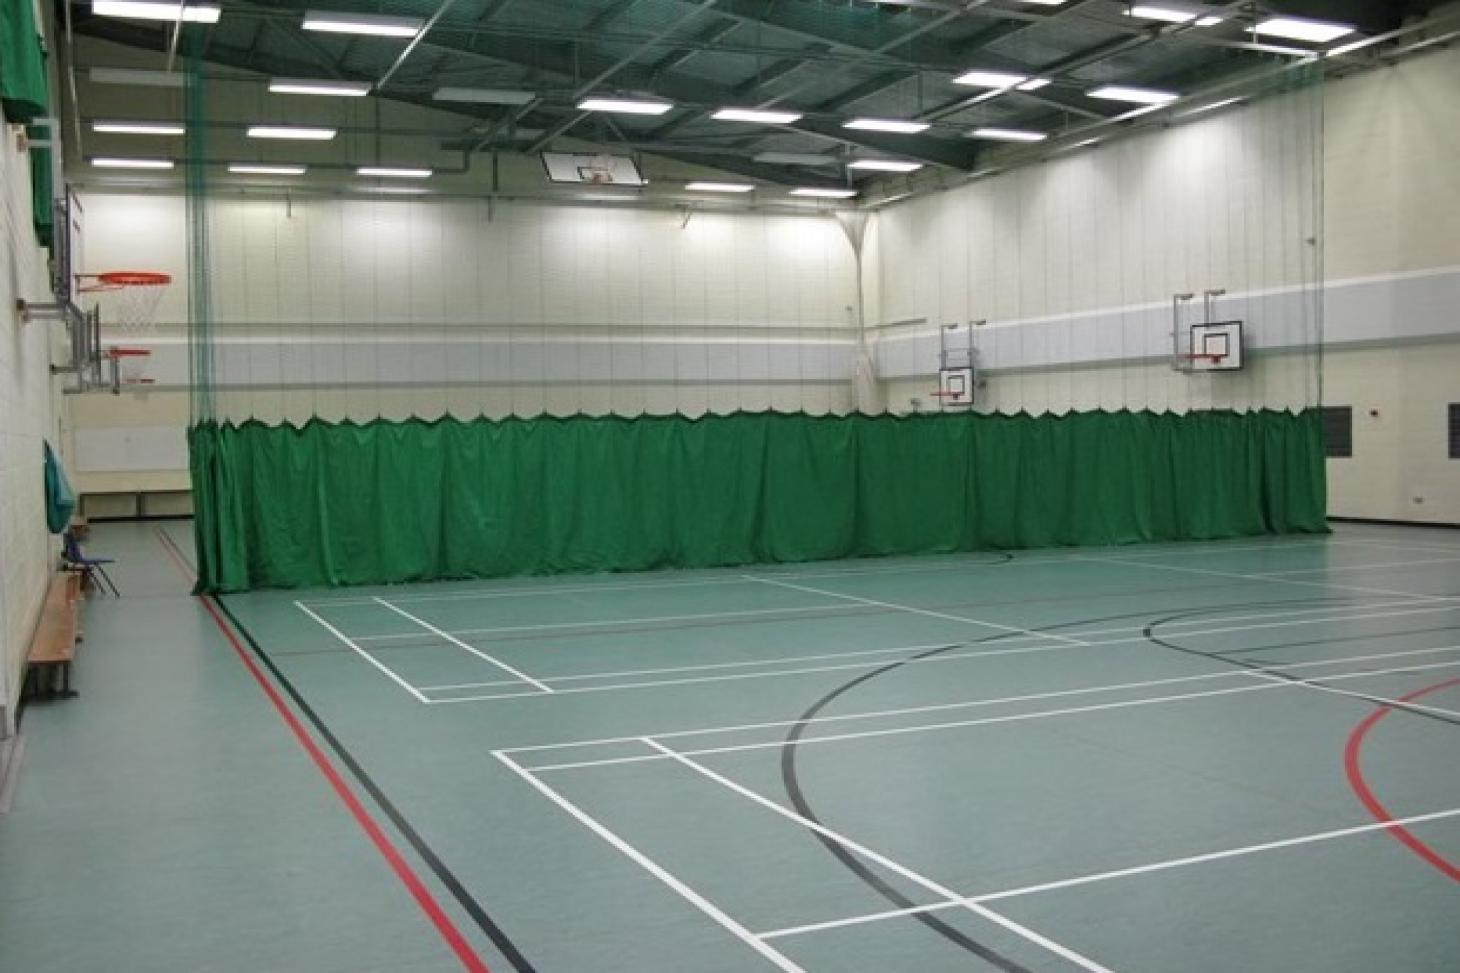 Denbigh High School Nets | Sports hall cricket facilities